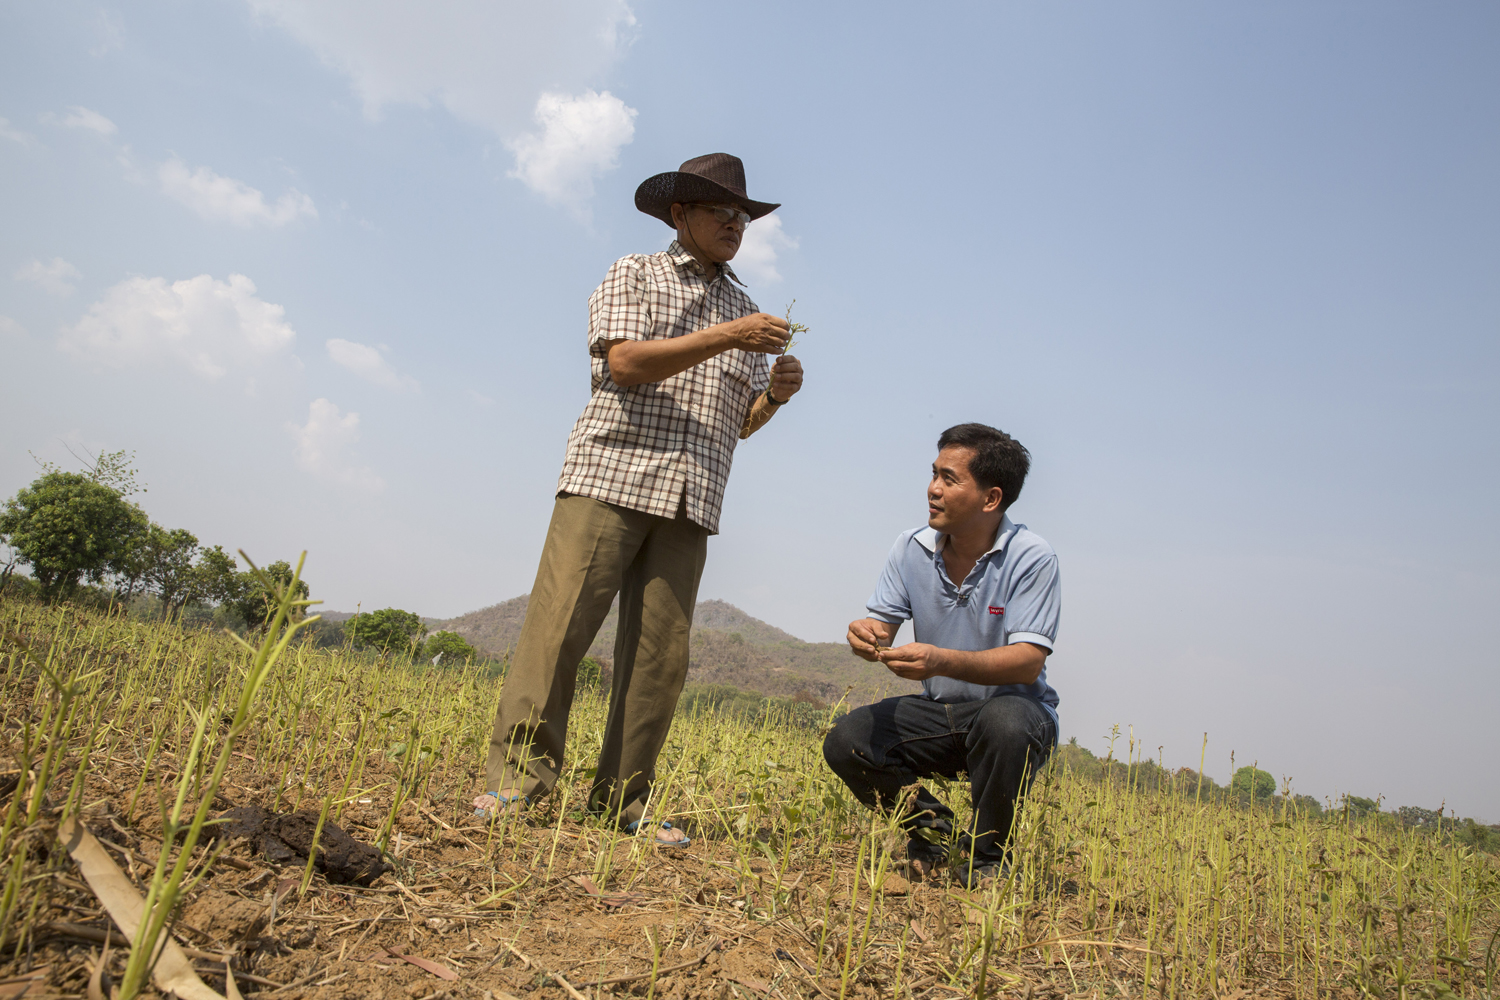 Volunteer abroad with voluntary service overseas vso volunteer giovanni villafuerte inspecting the crops and earth in the paddy fields of banan in cambodia solutioingenieria Image collections